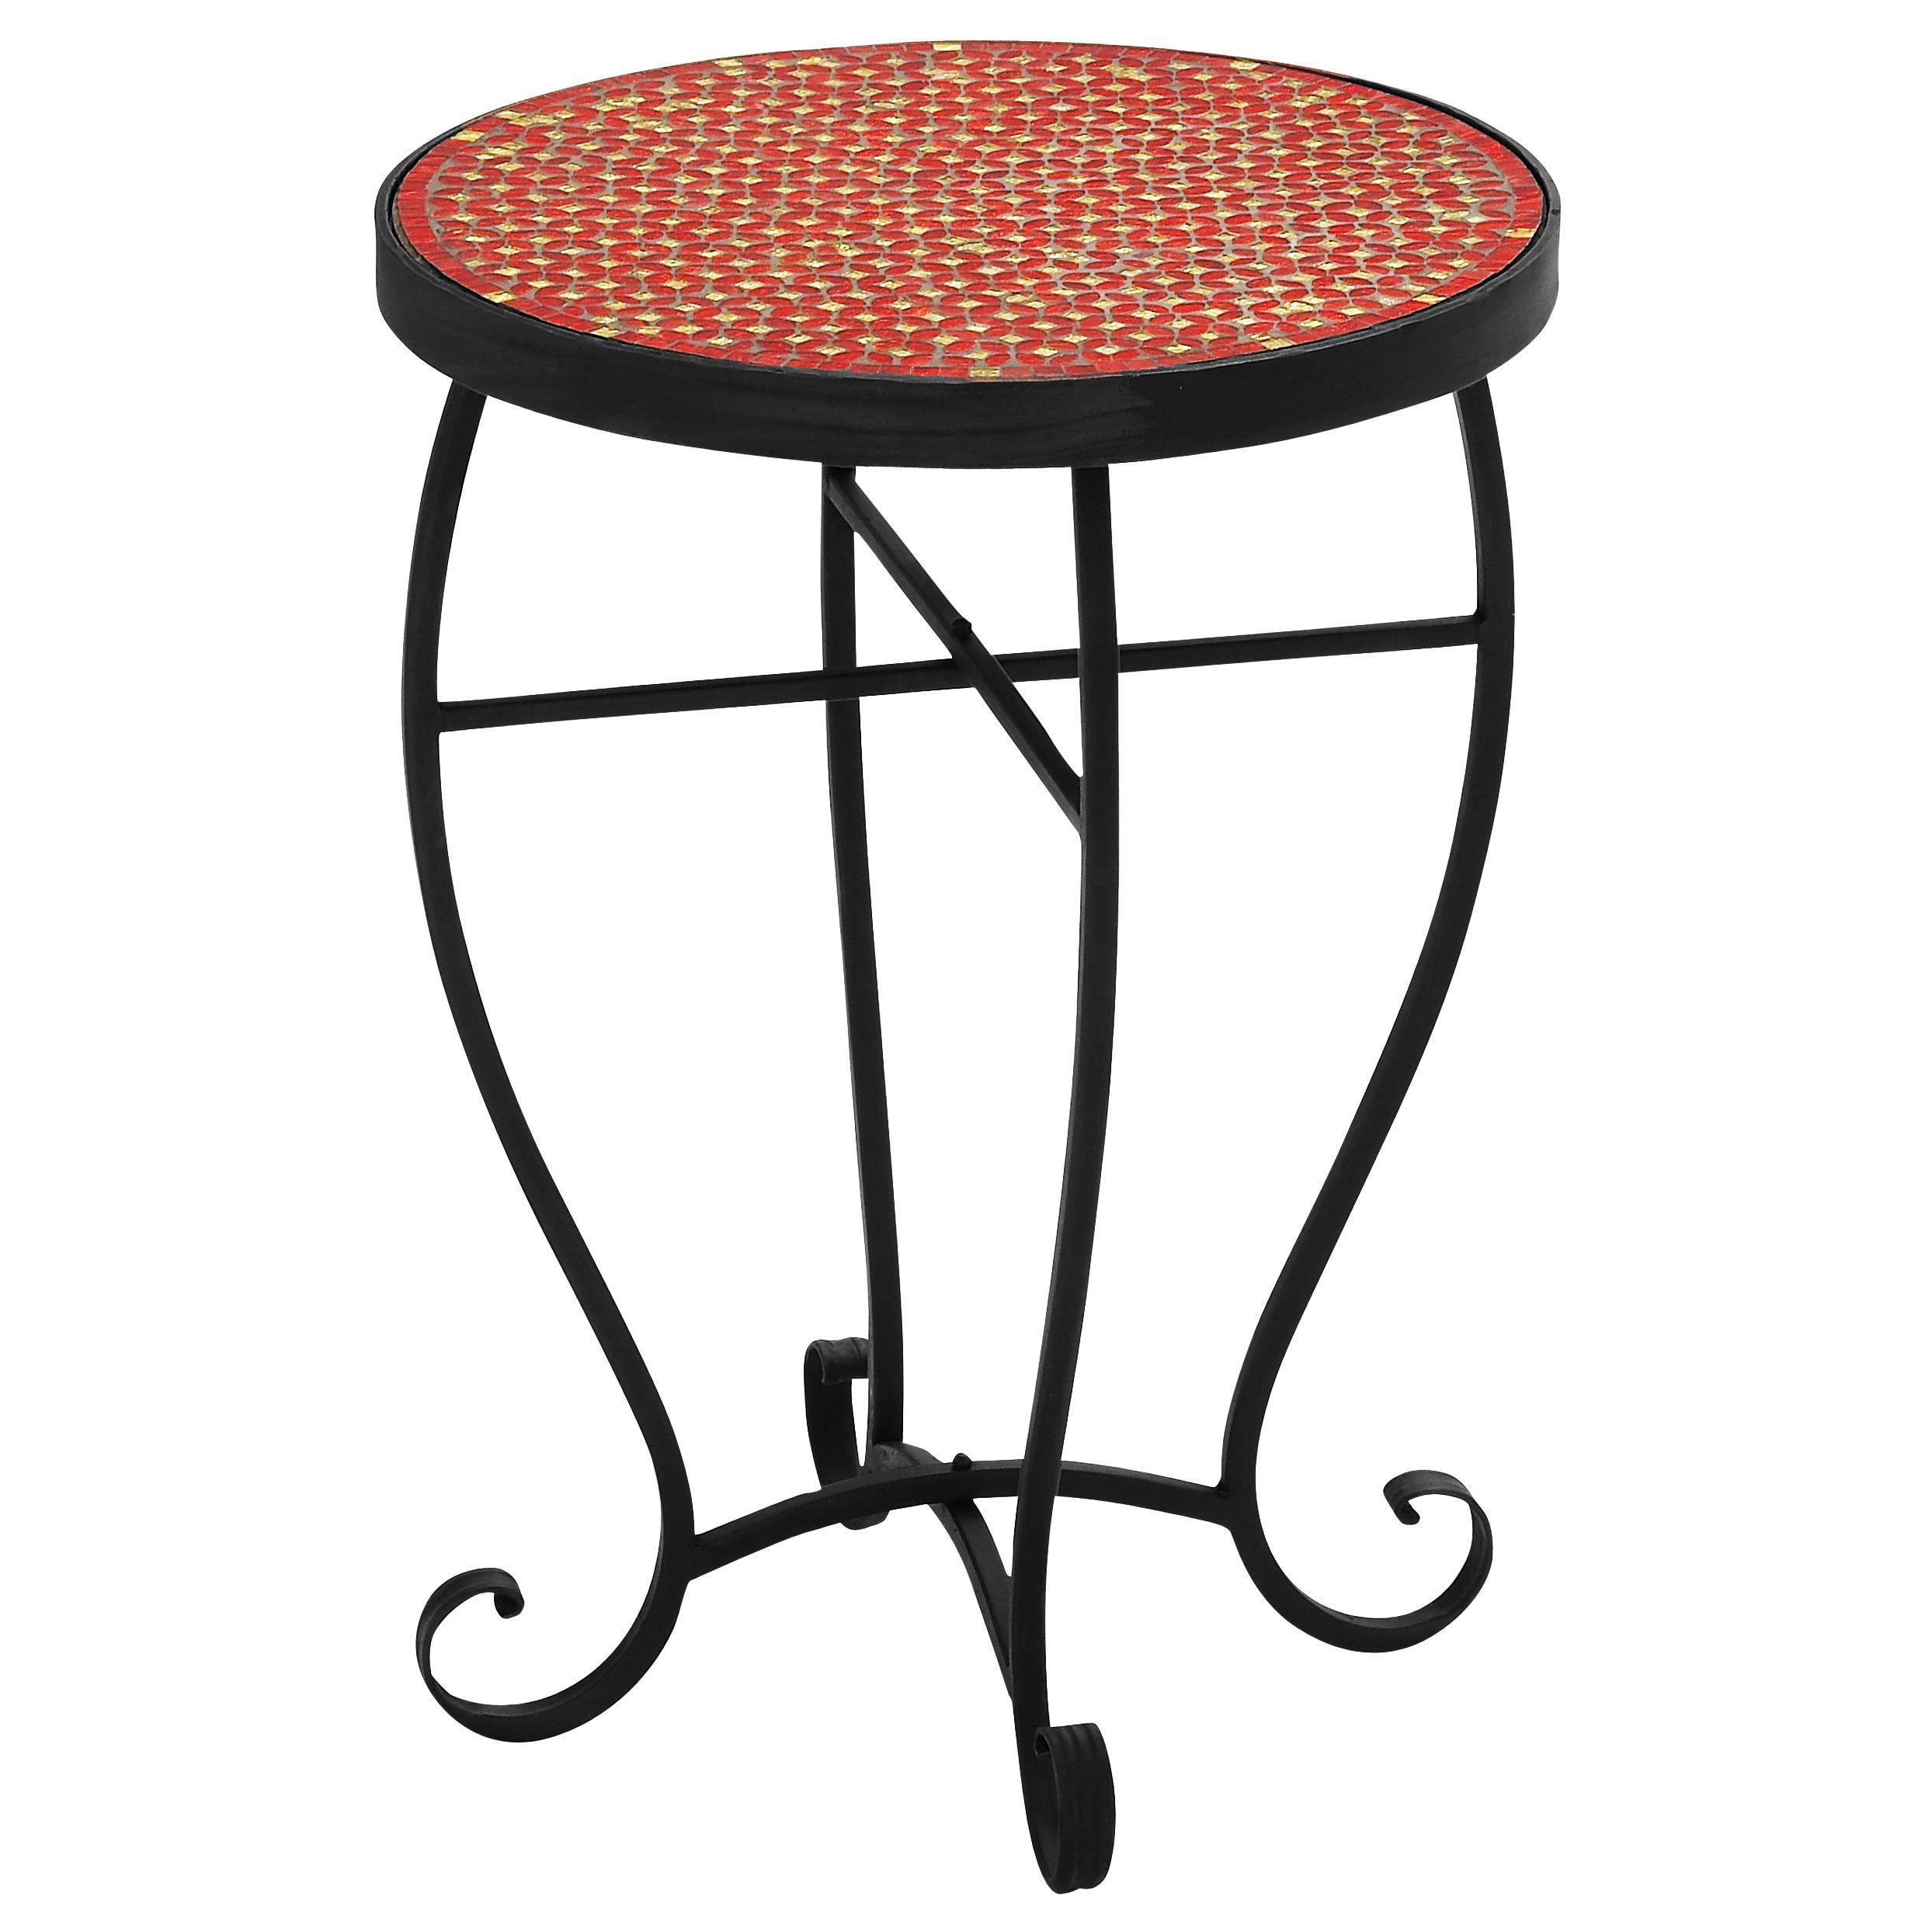 Red Mosaic Look Tile Top Ethnic Decorative End Table Accent Night Stand